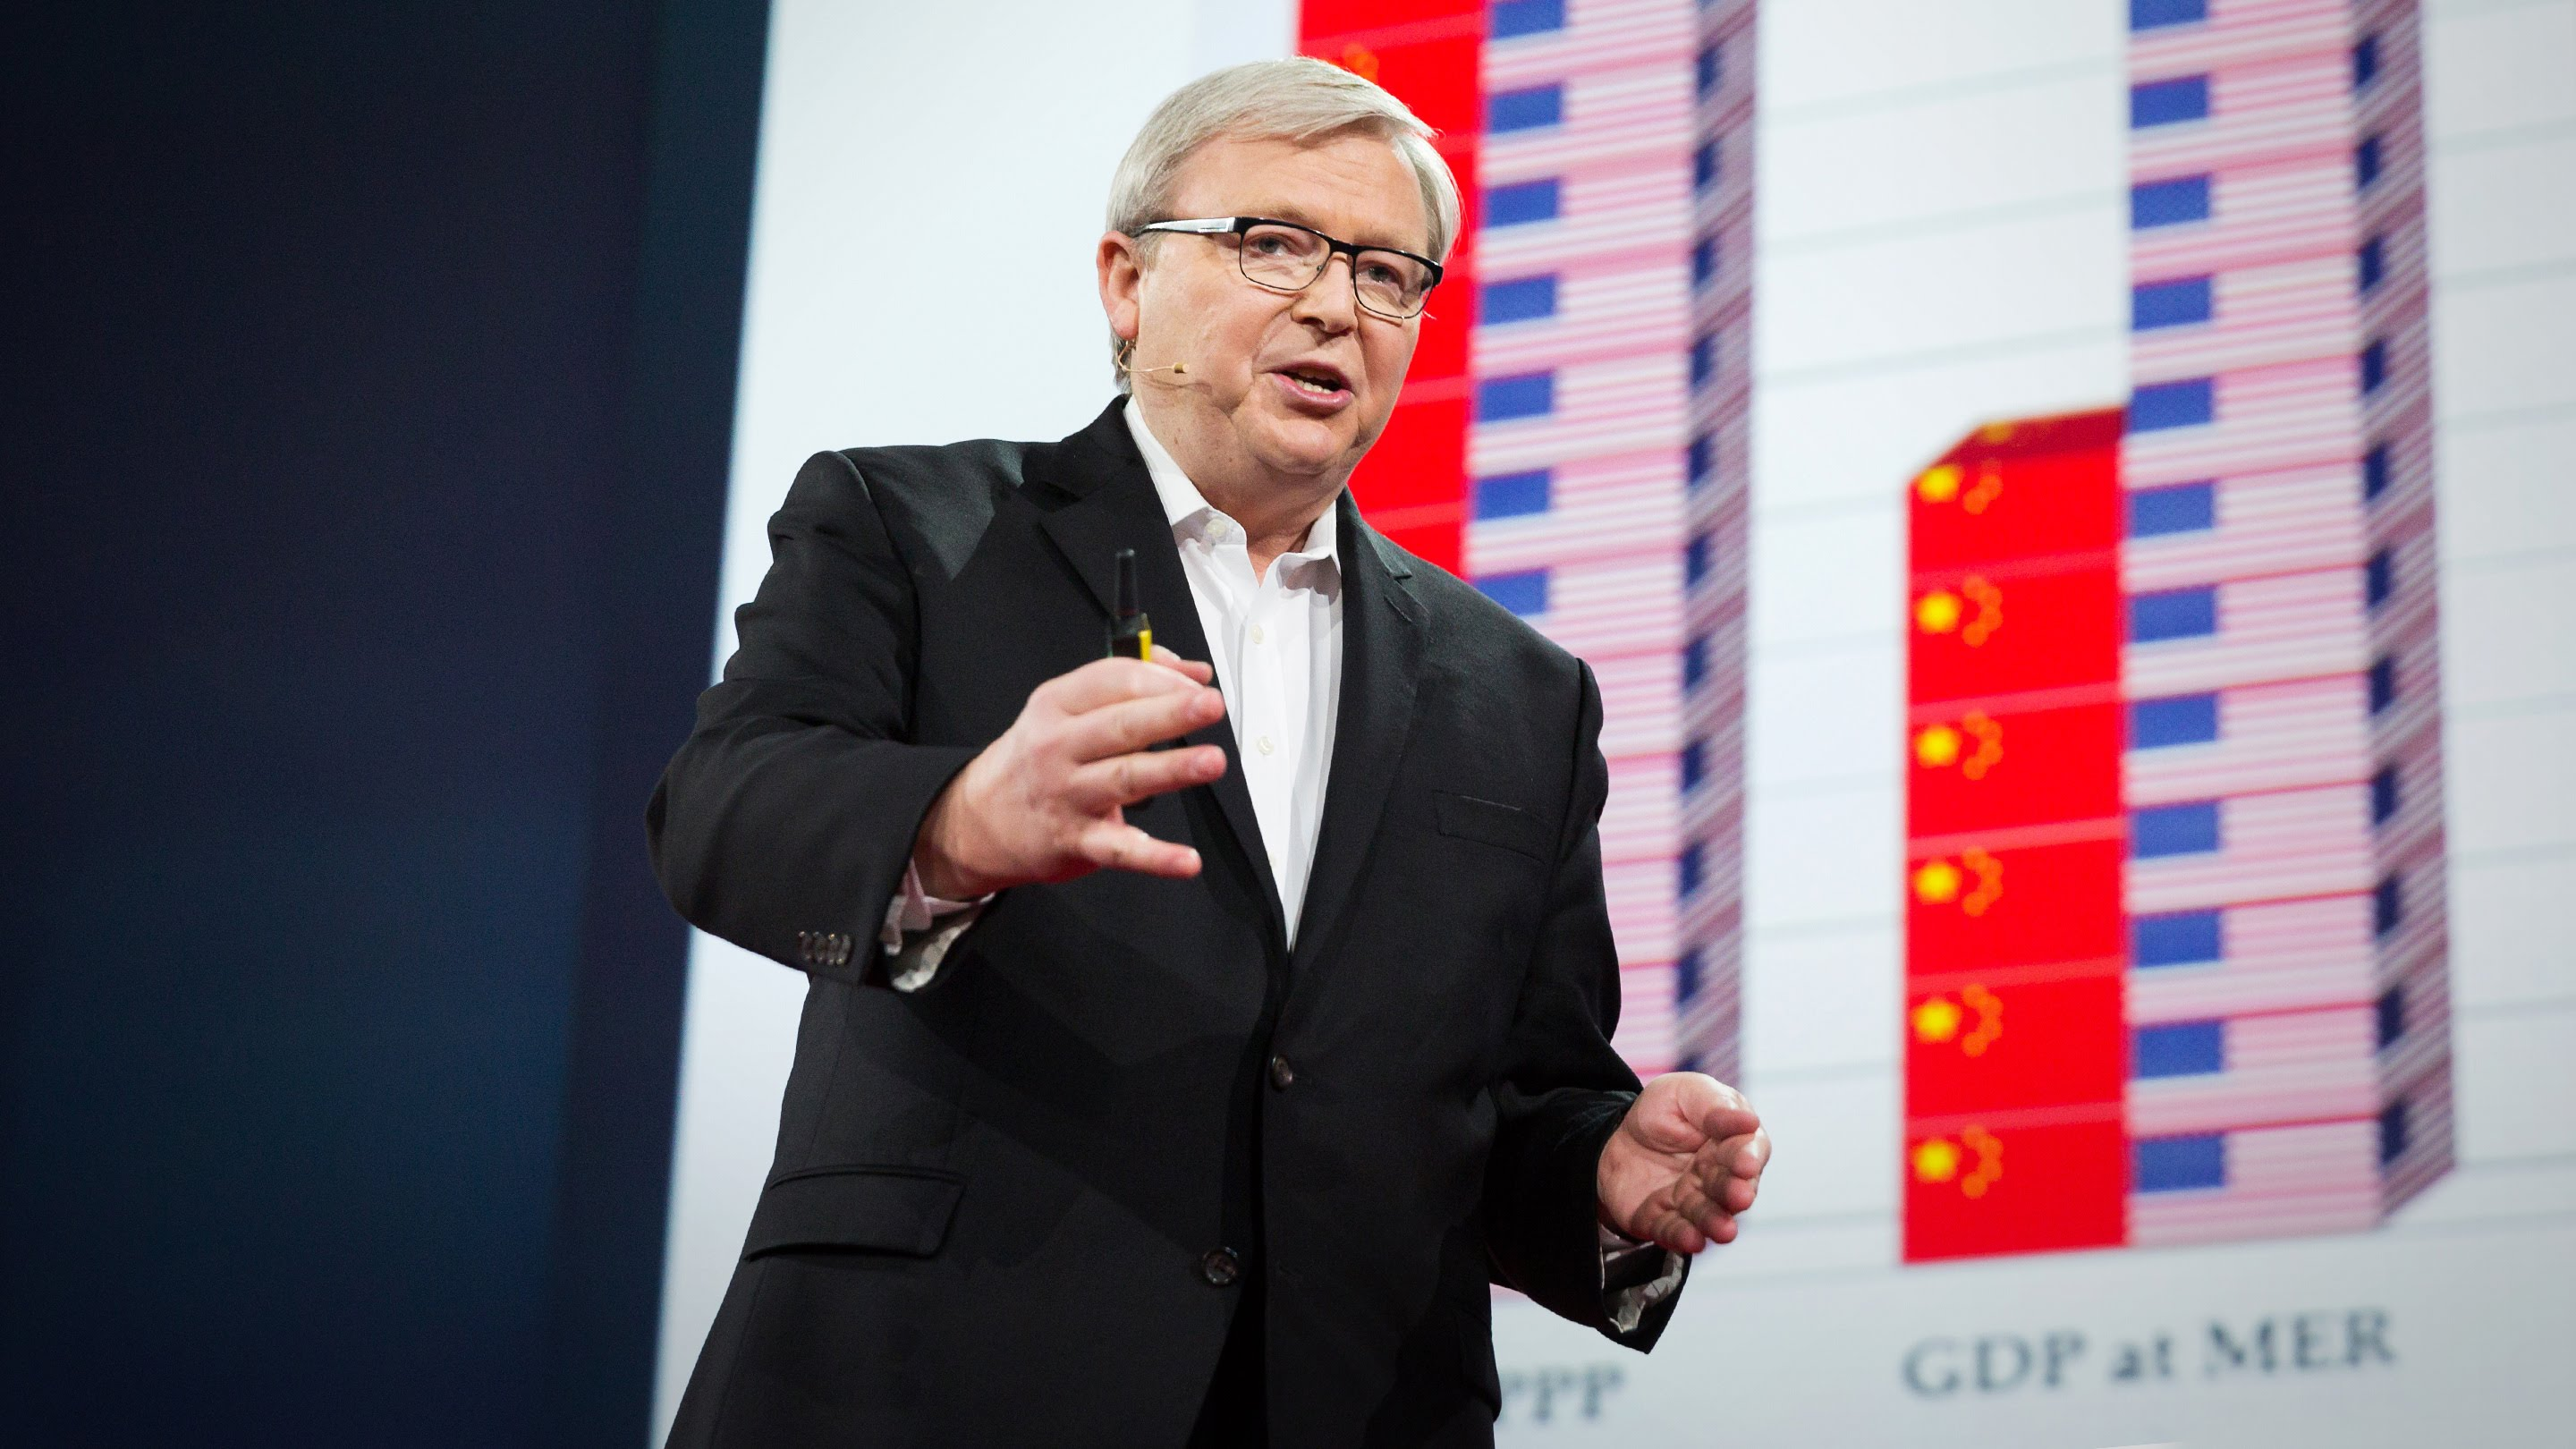 「Kevin Rudd:中國和美國,註定的敵手?」- Are China and the US Doomed to Conflict?